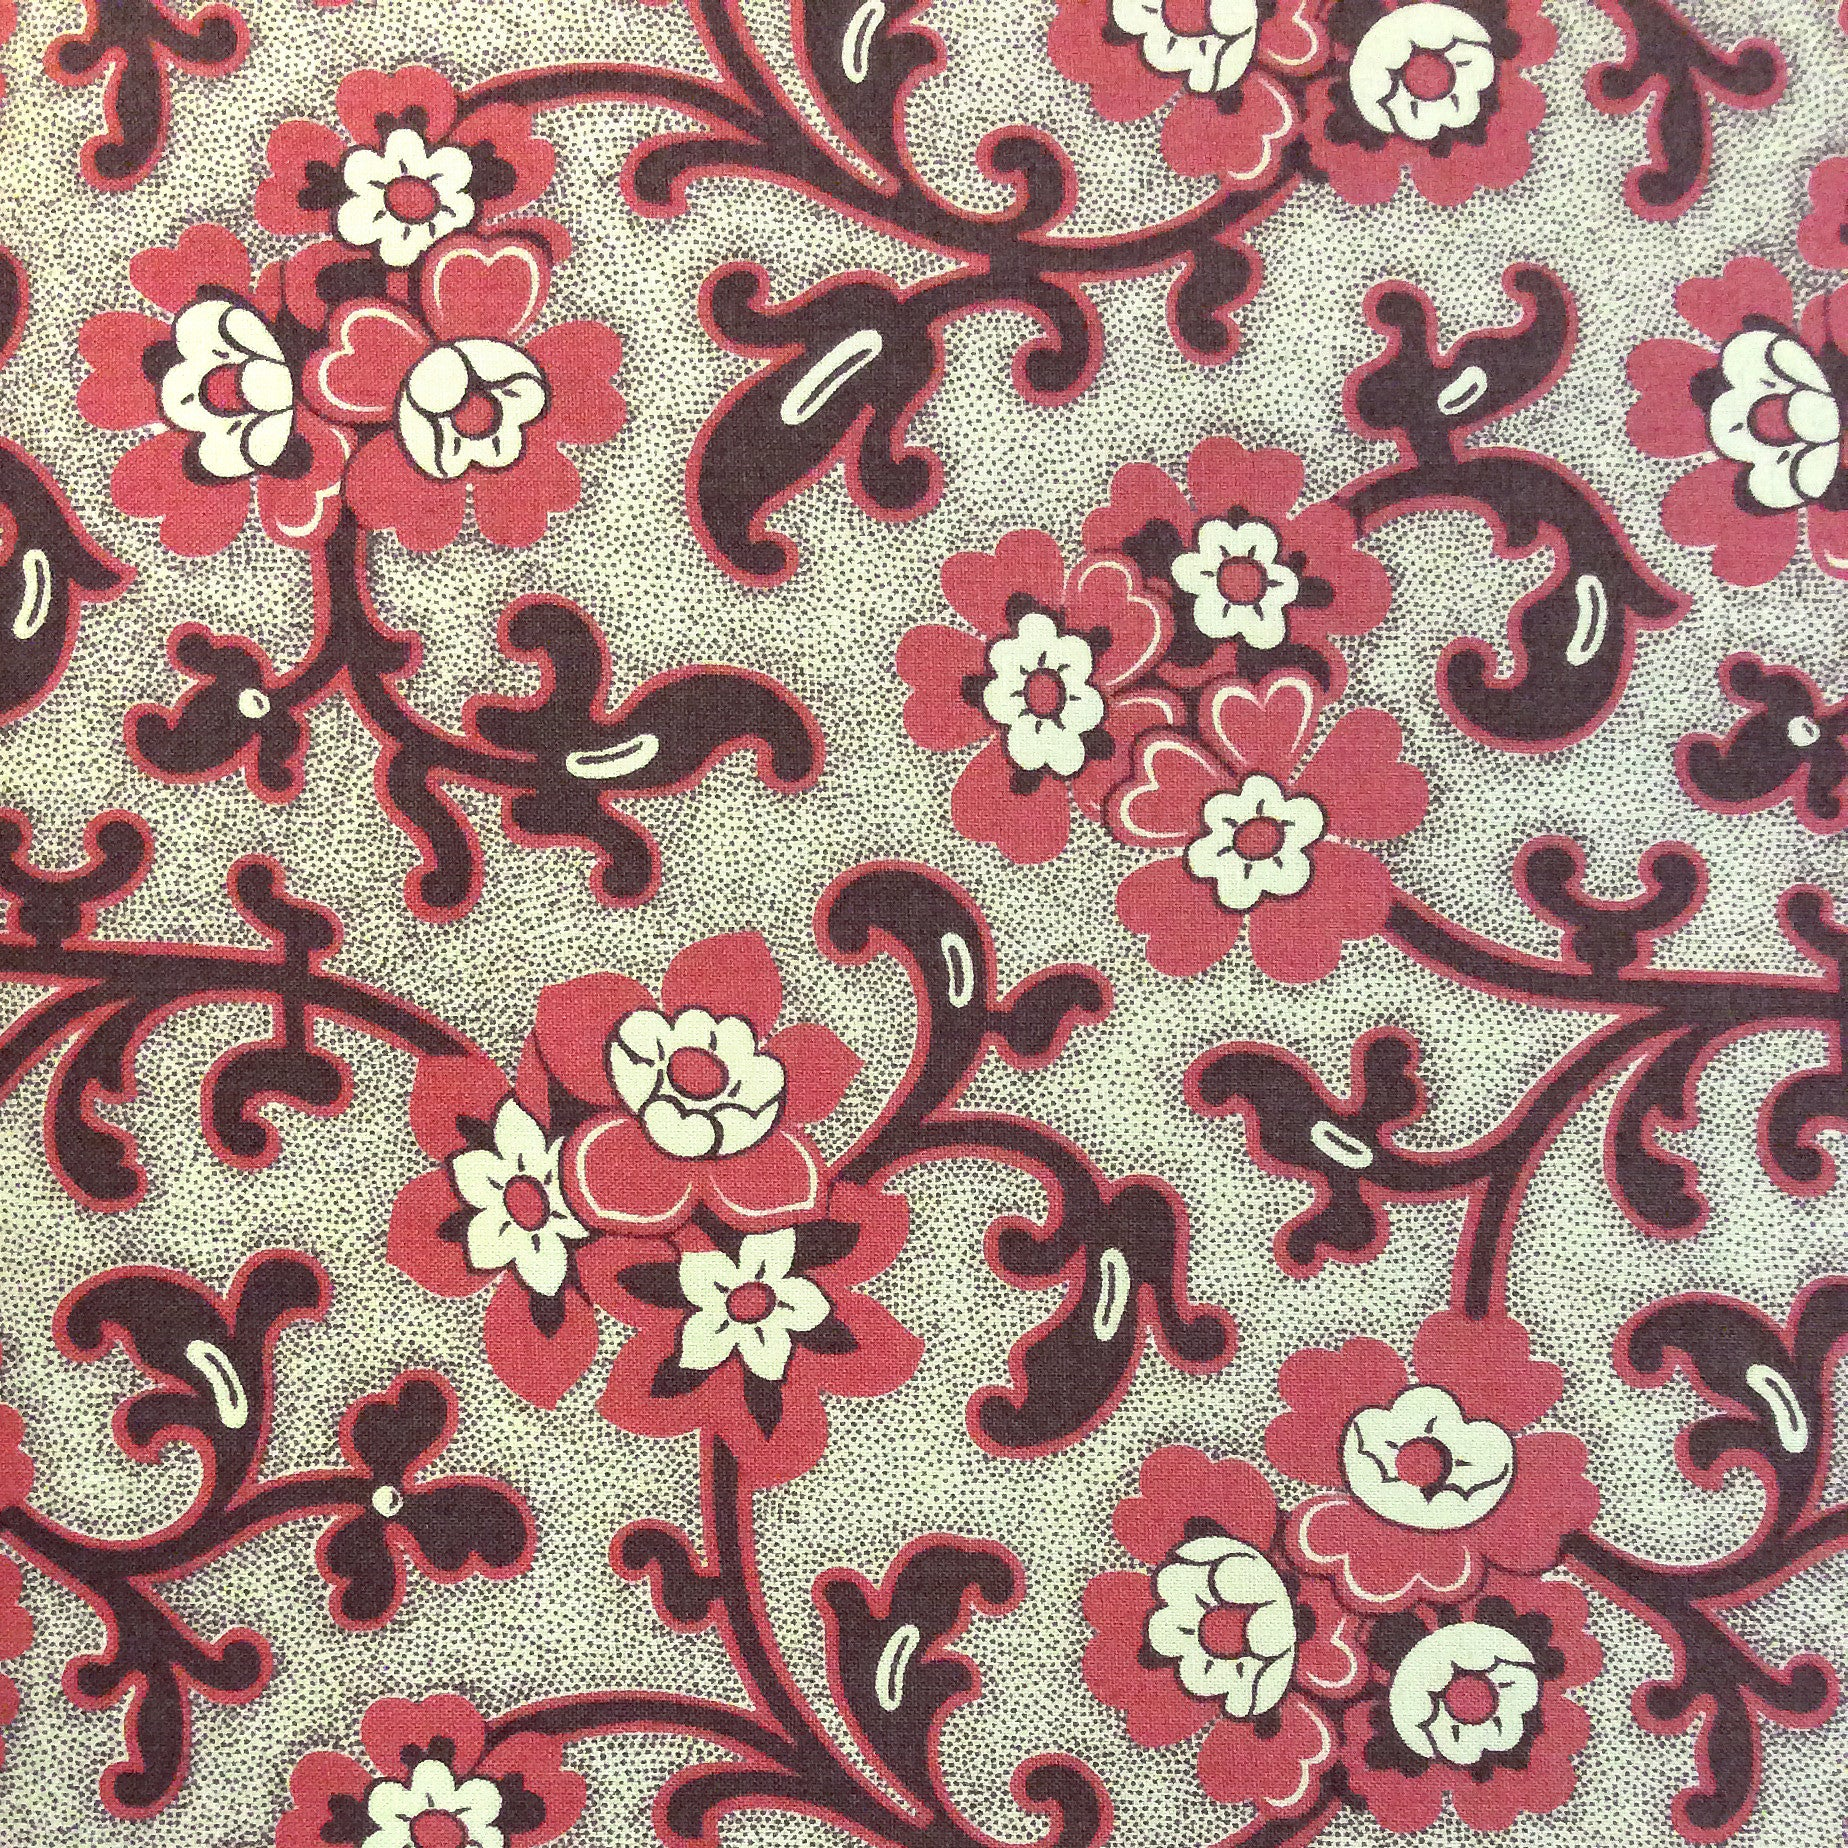 Chateau Rouge 13623 15 Moda Fabric